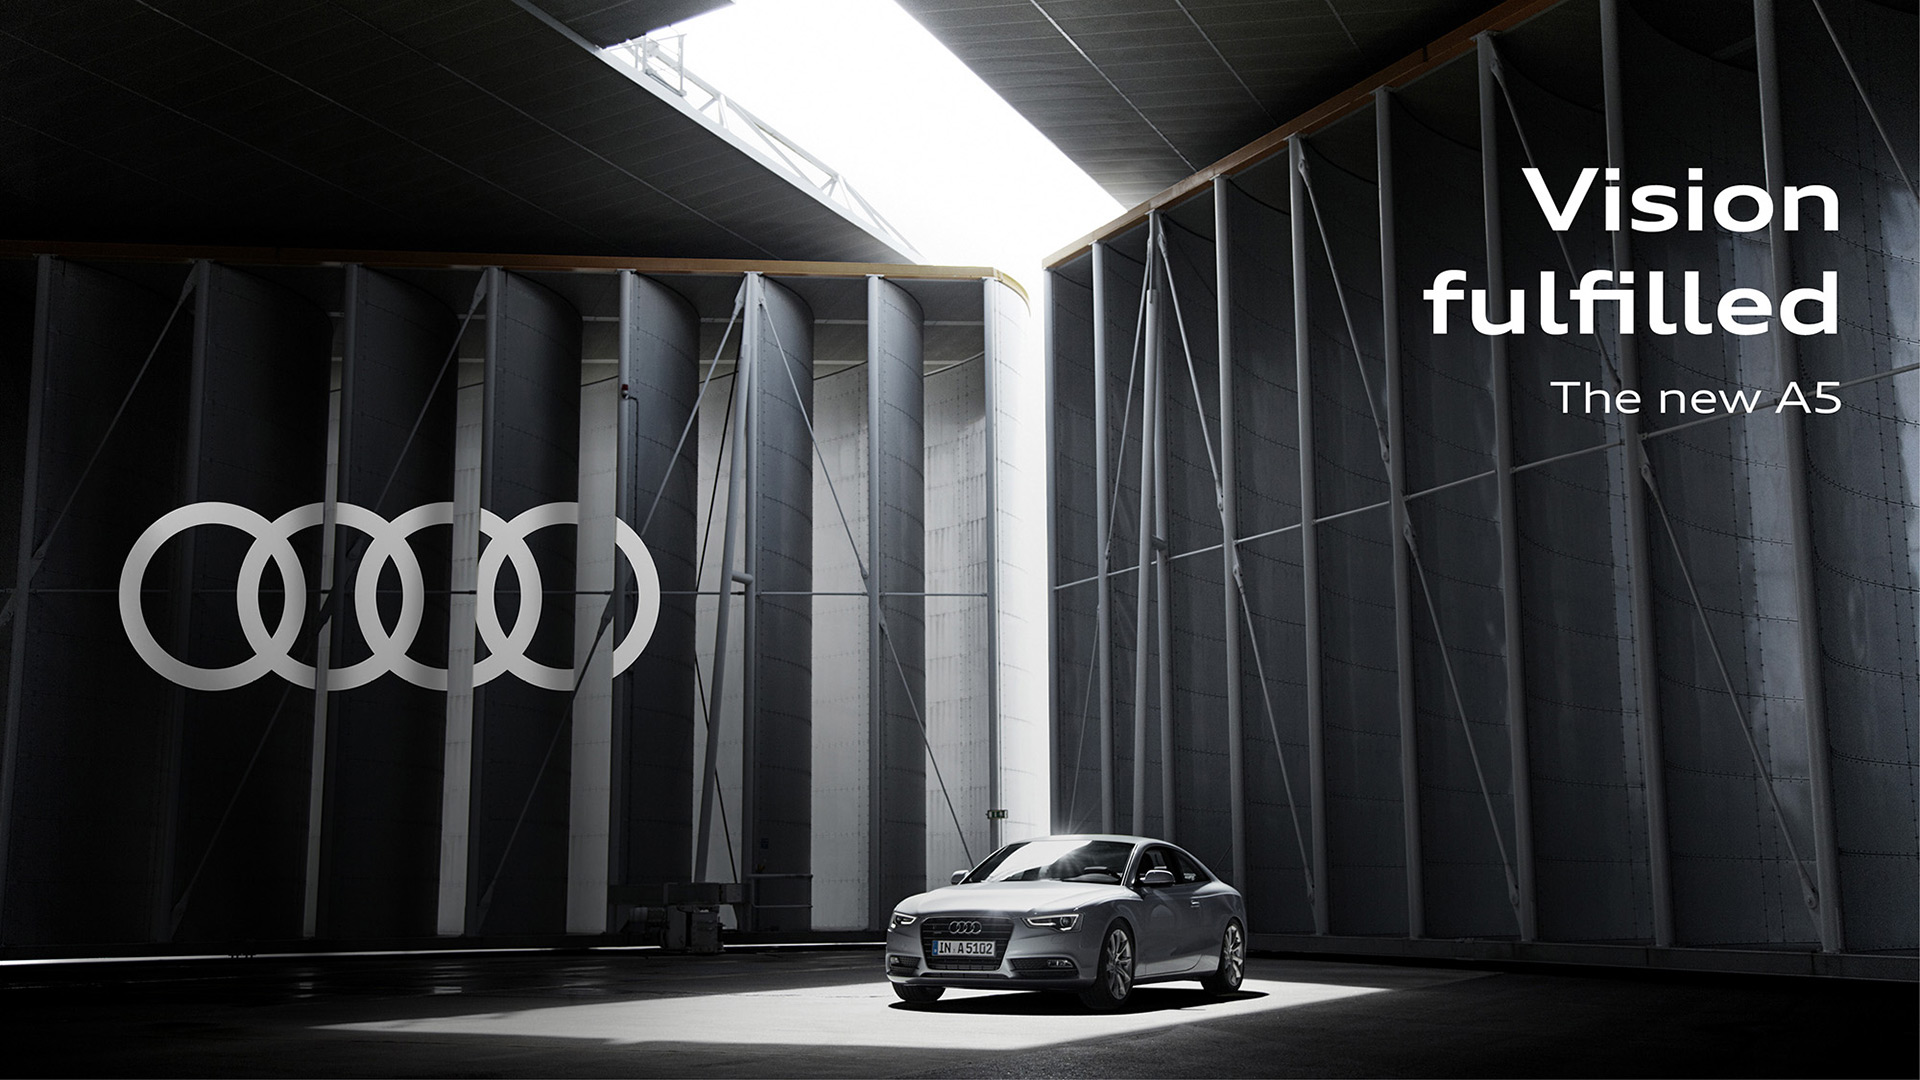 Advertising for the new A5 from Audi. The car stands in front of a revolving wall on which the Audi logo can be seen on the left. Daneben steht: Vision fulfilled. The new Audi A5.